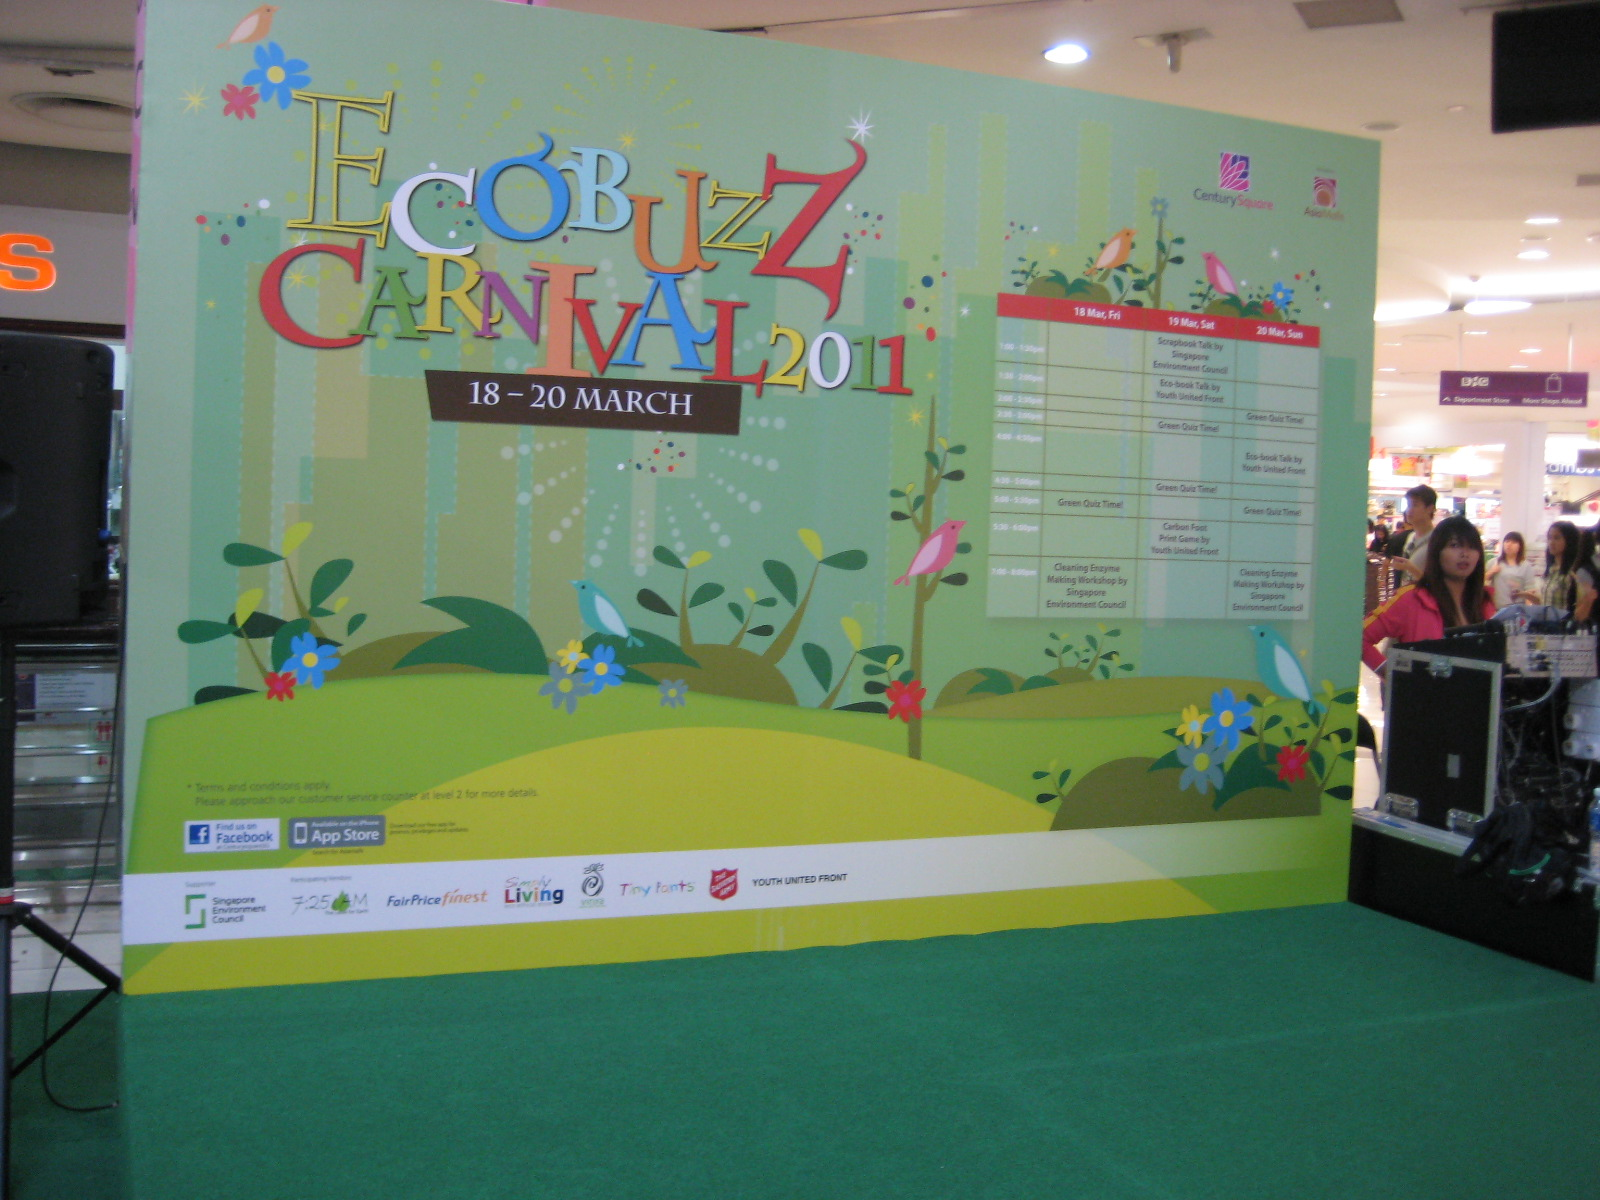 Eco-Buzz Carnival at Century Square